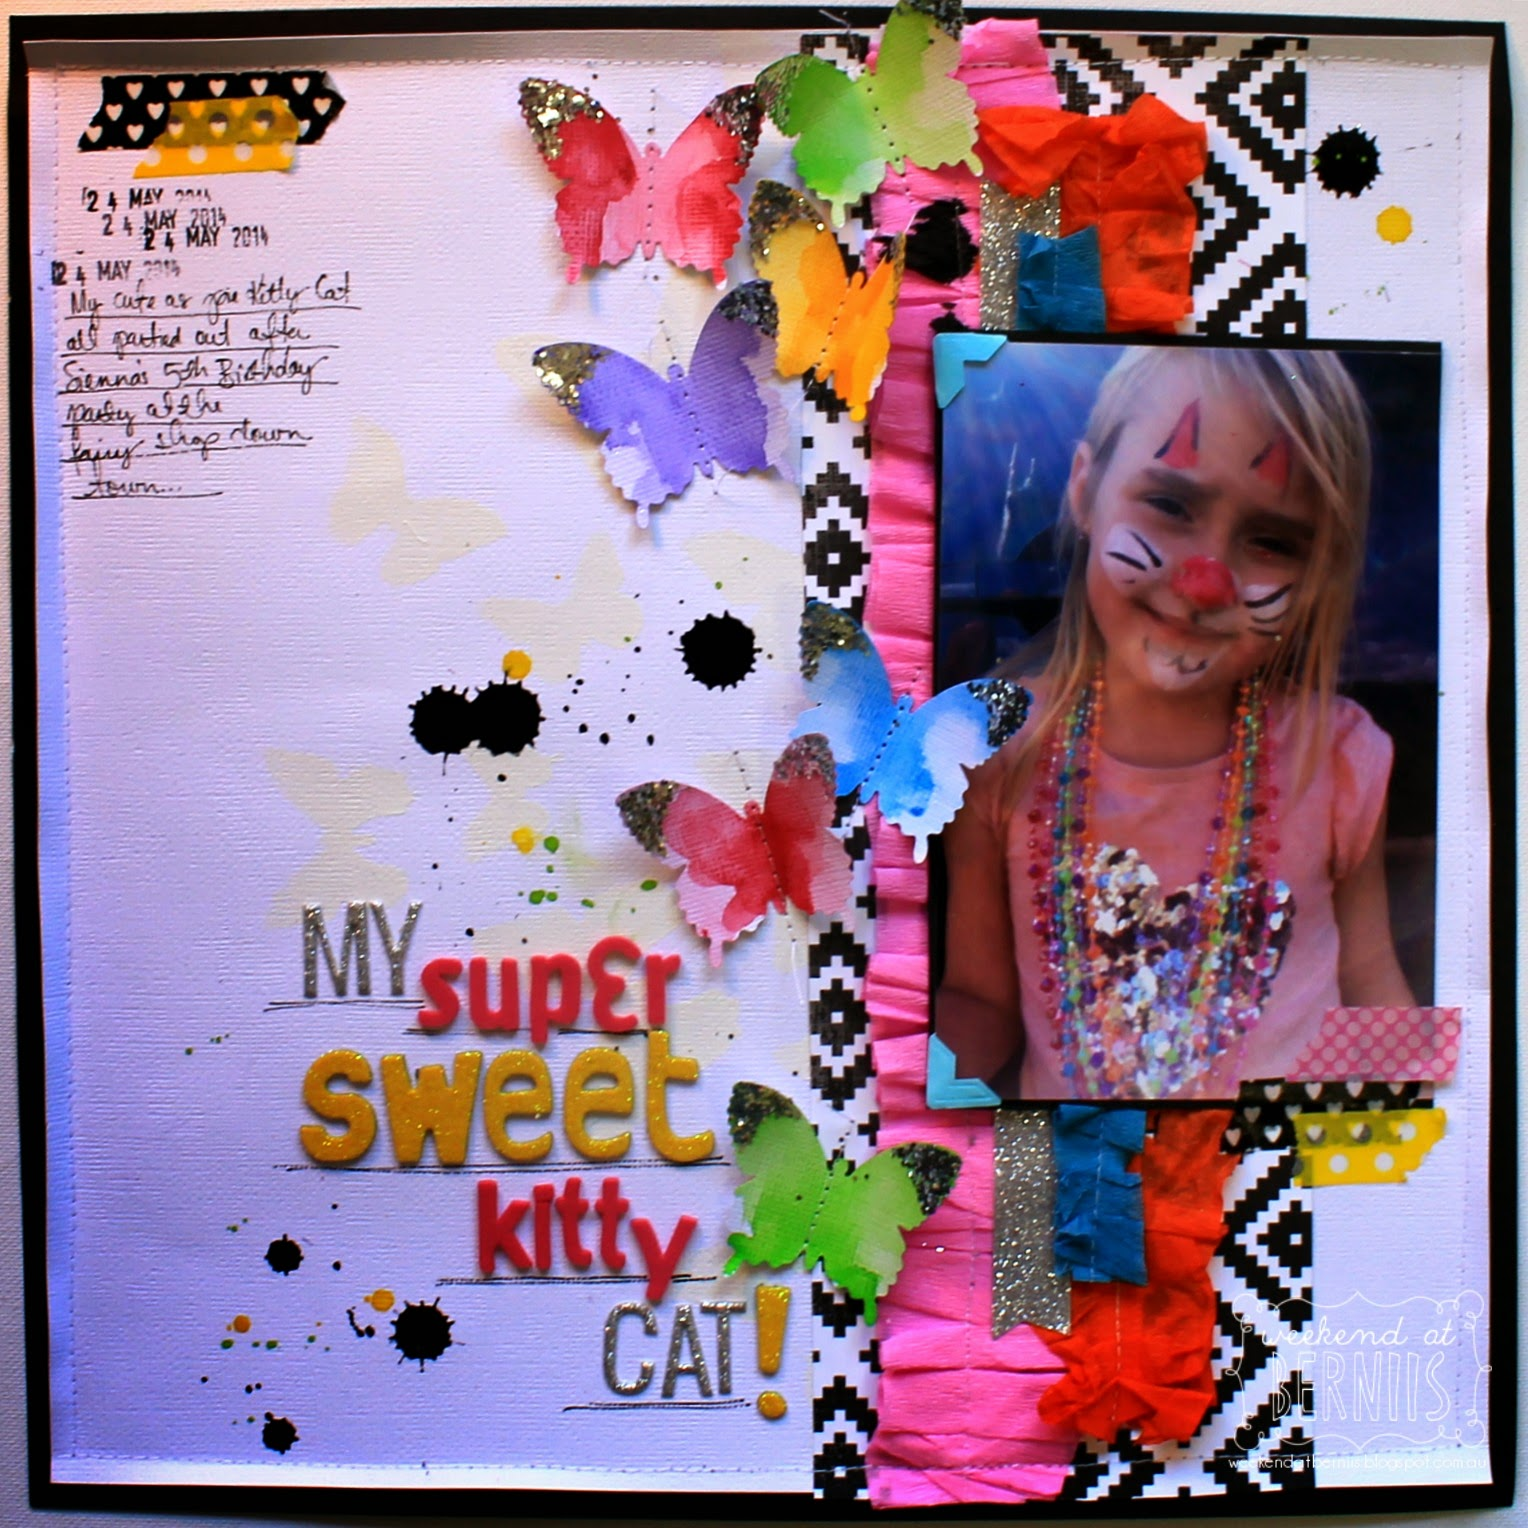 My Super sweet kitty cat layout by Bernii Miller